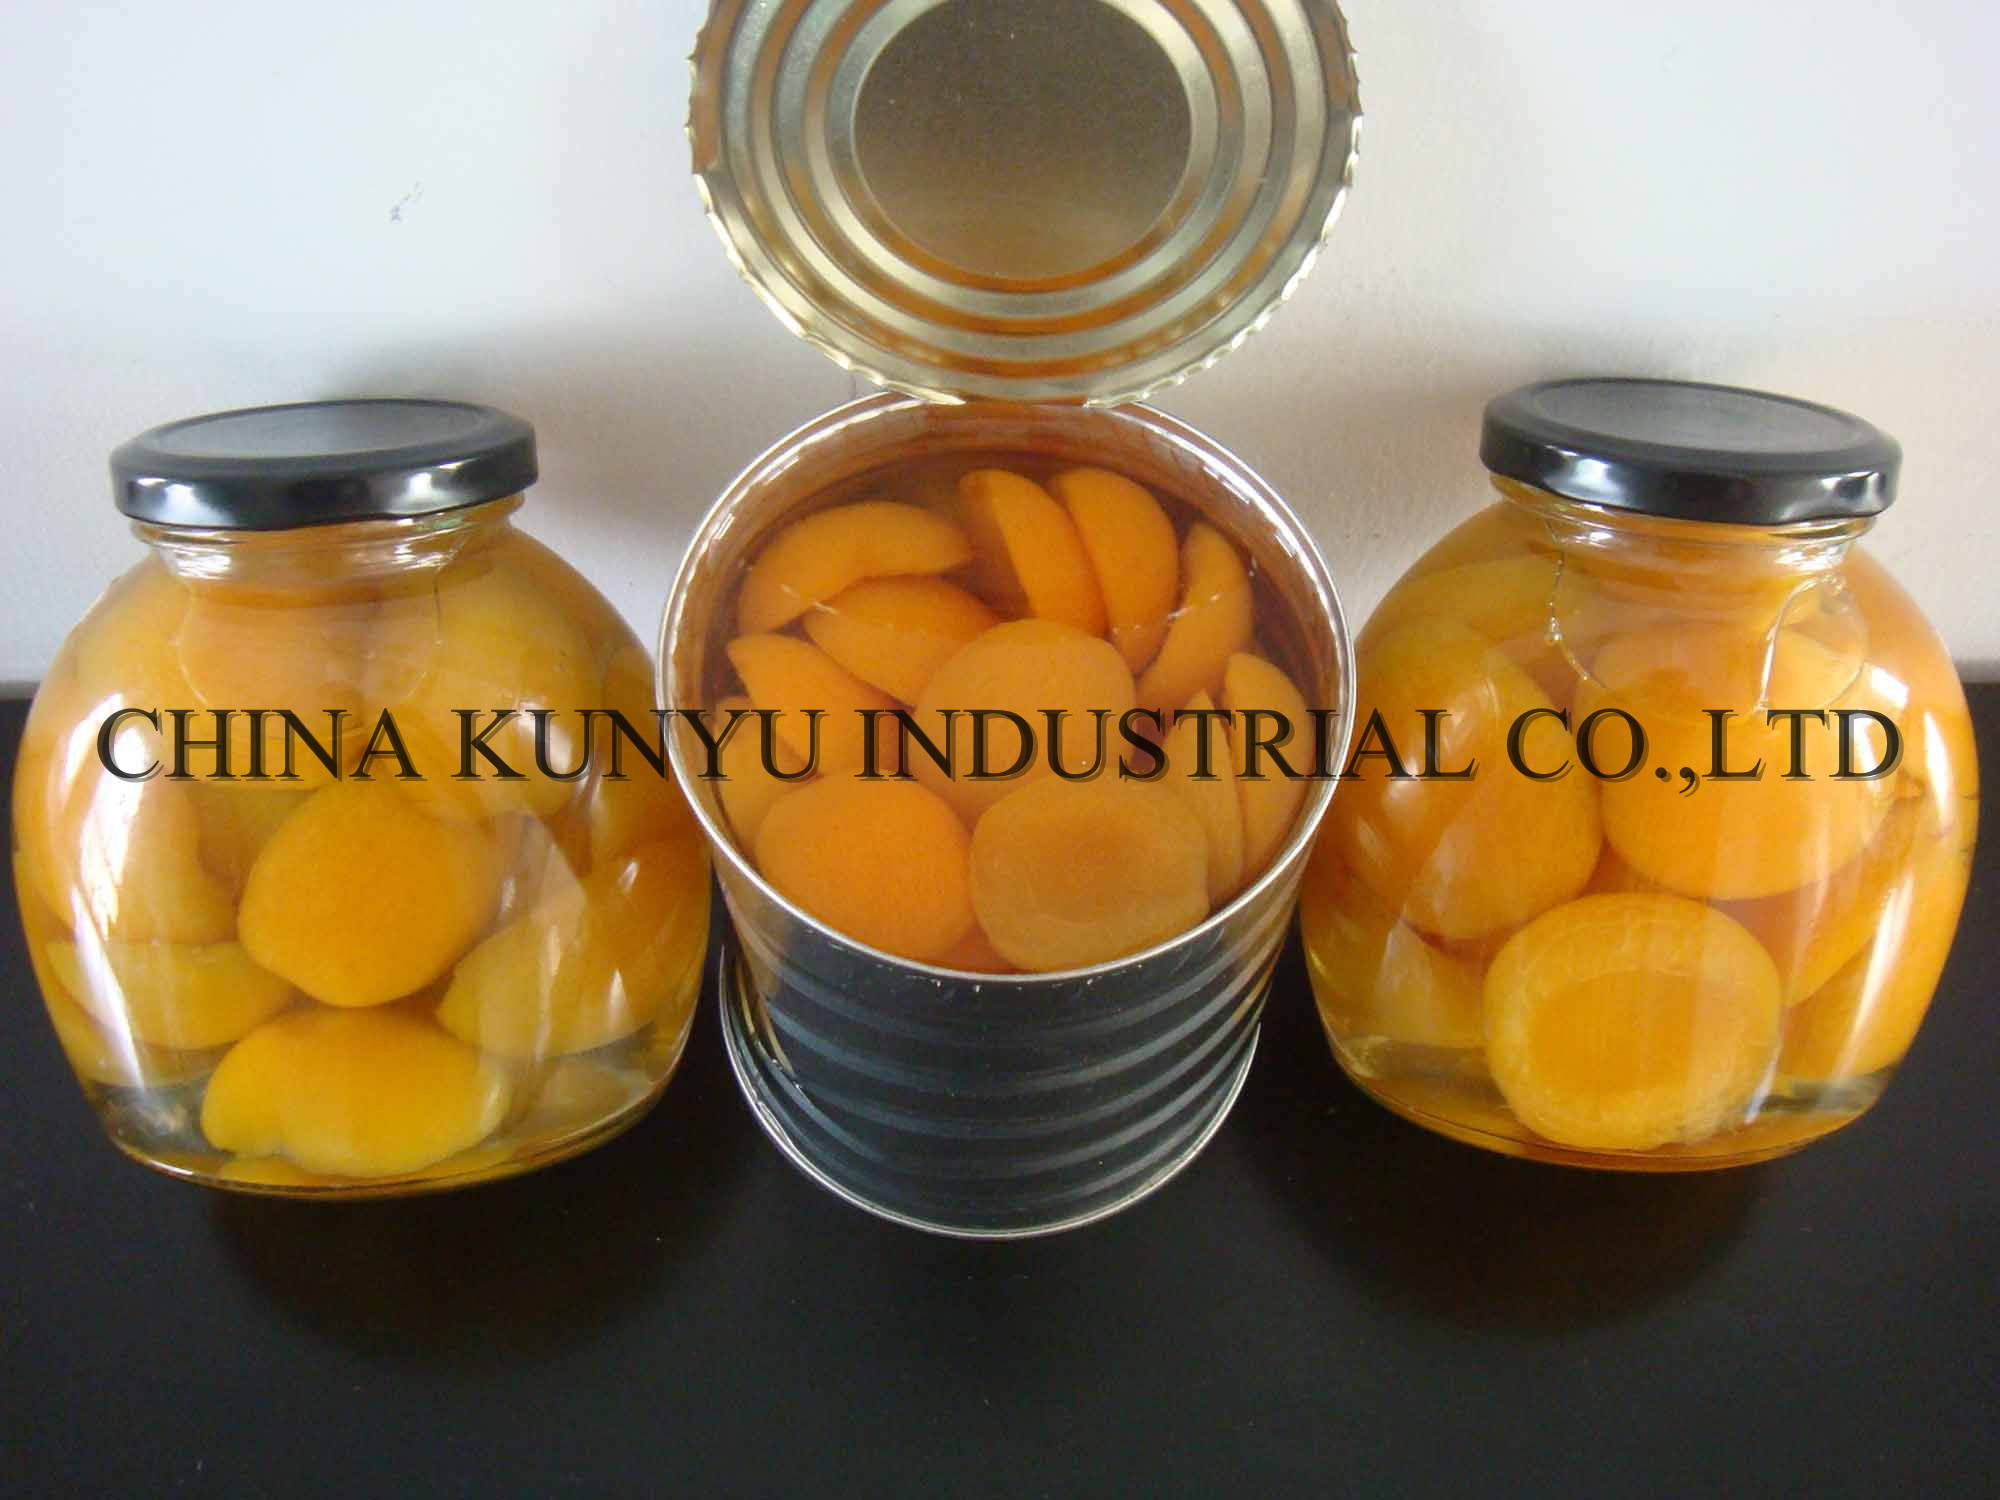 Apricot in Tin with High Quality